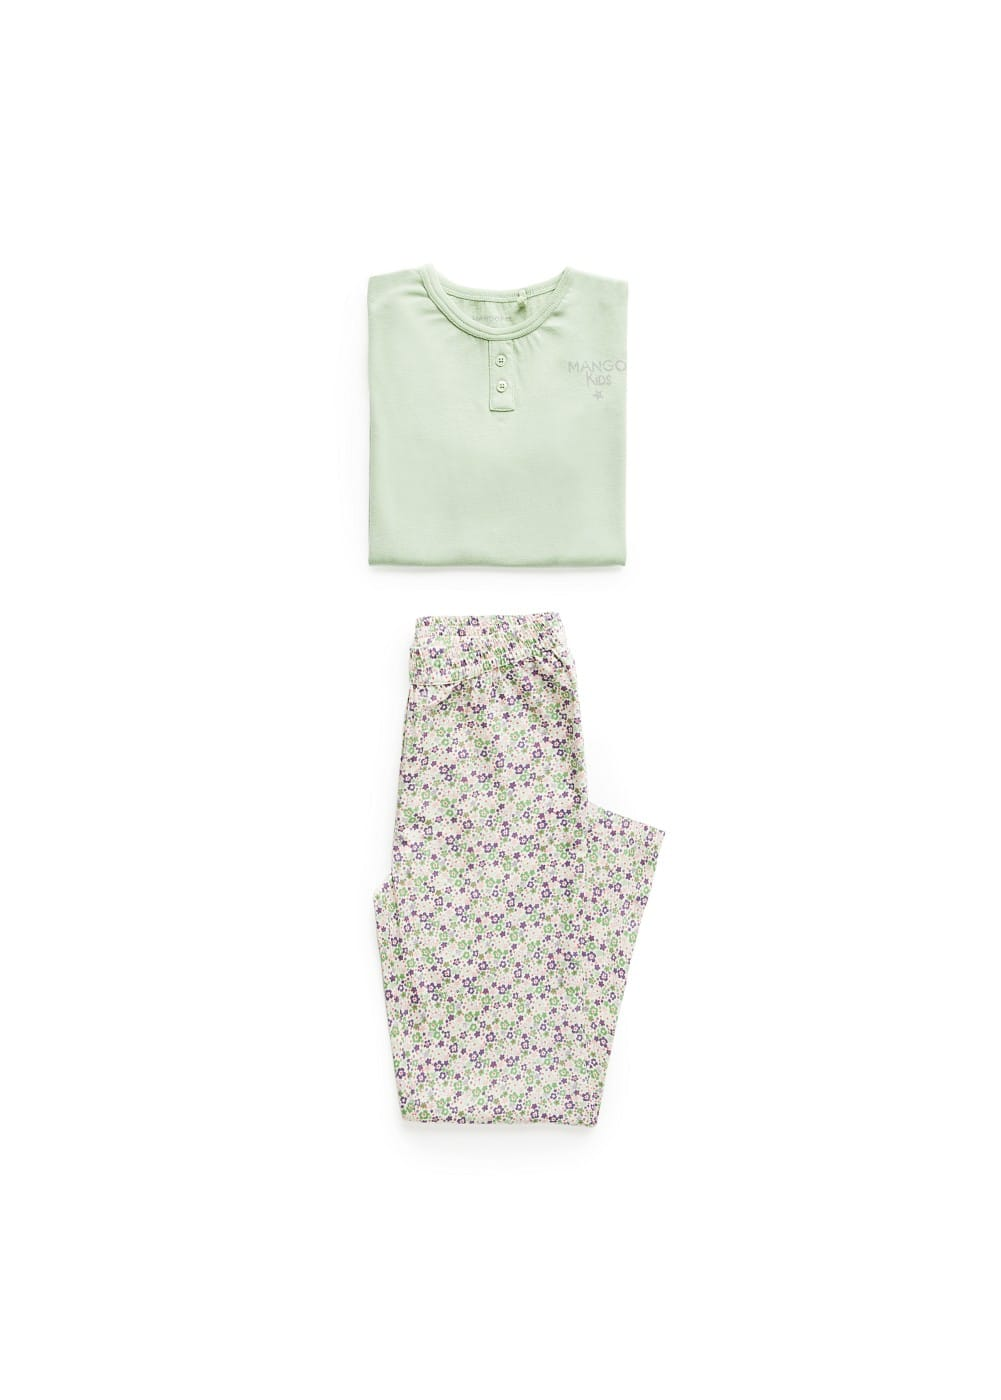 Liberty print cotton pyjamas